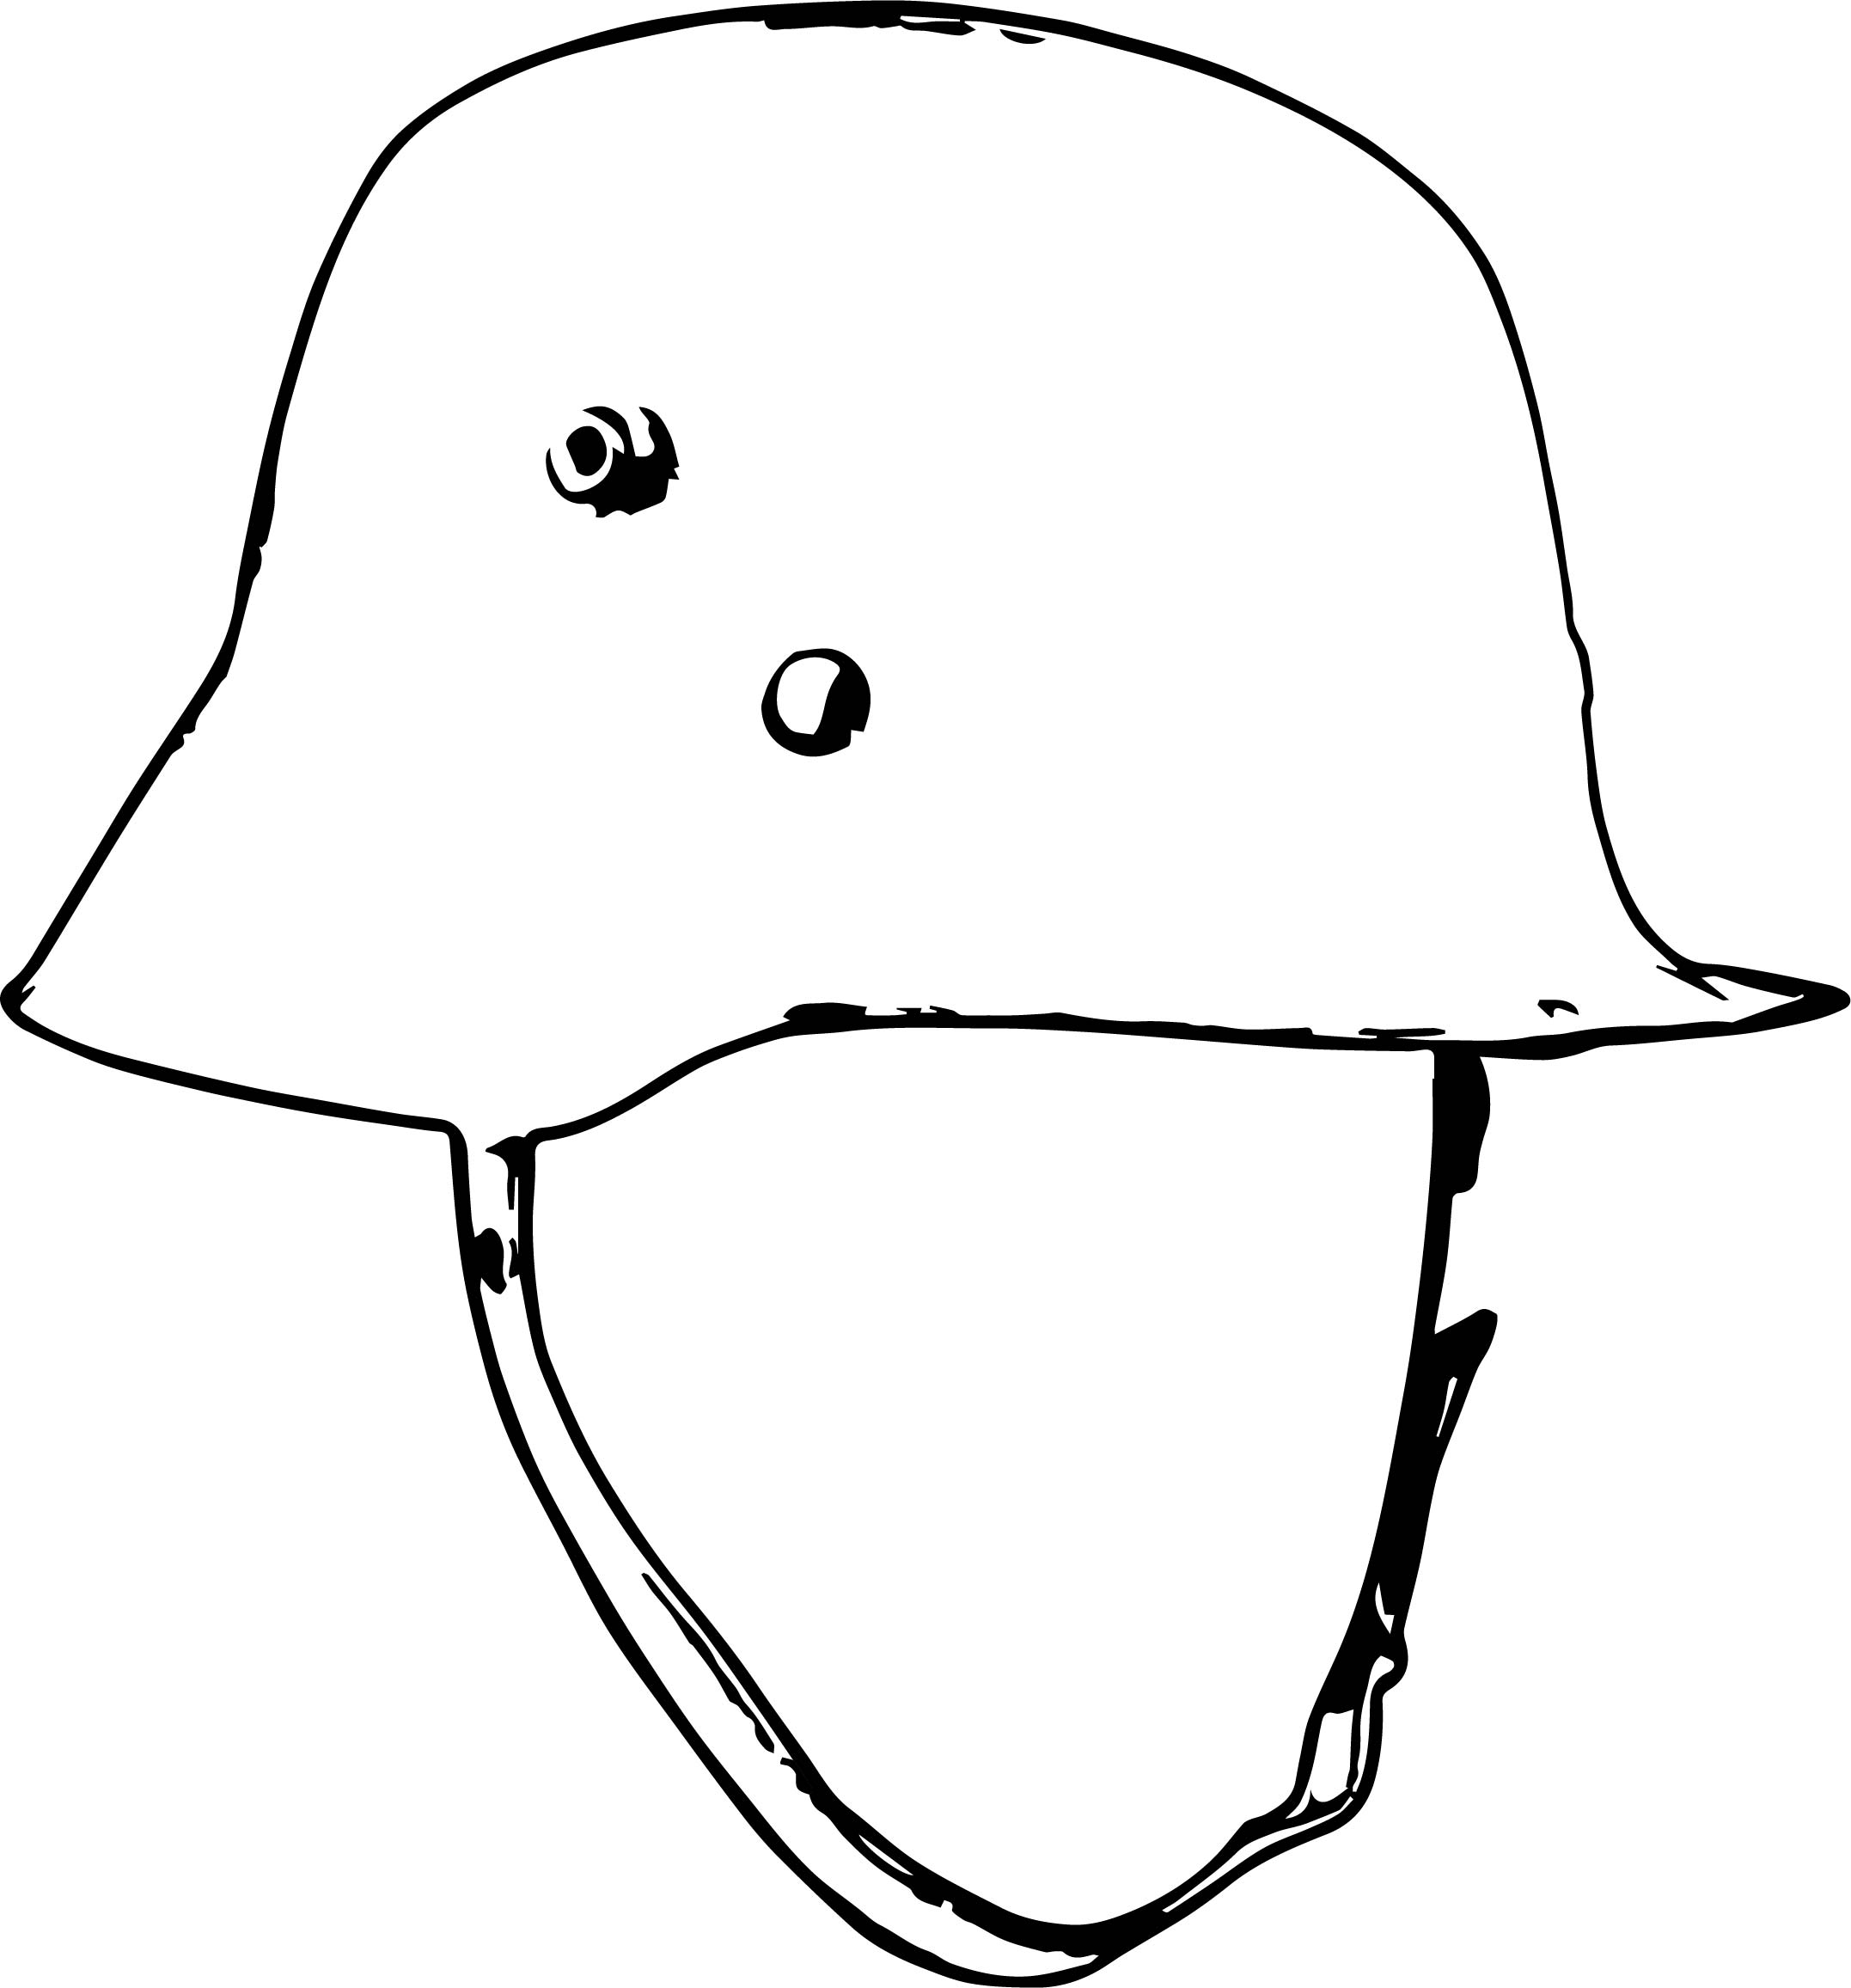 American British And German Uniforms Helmet Coloring Page